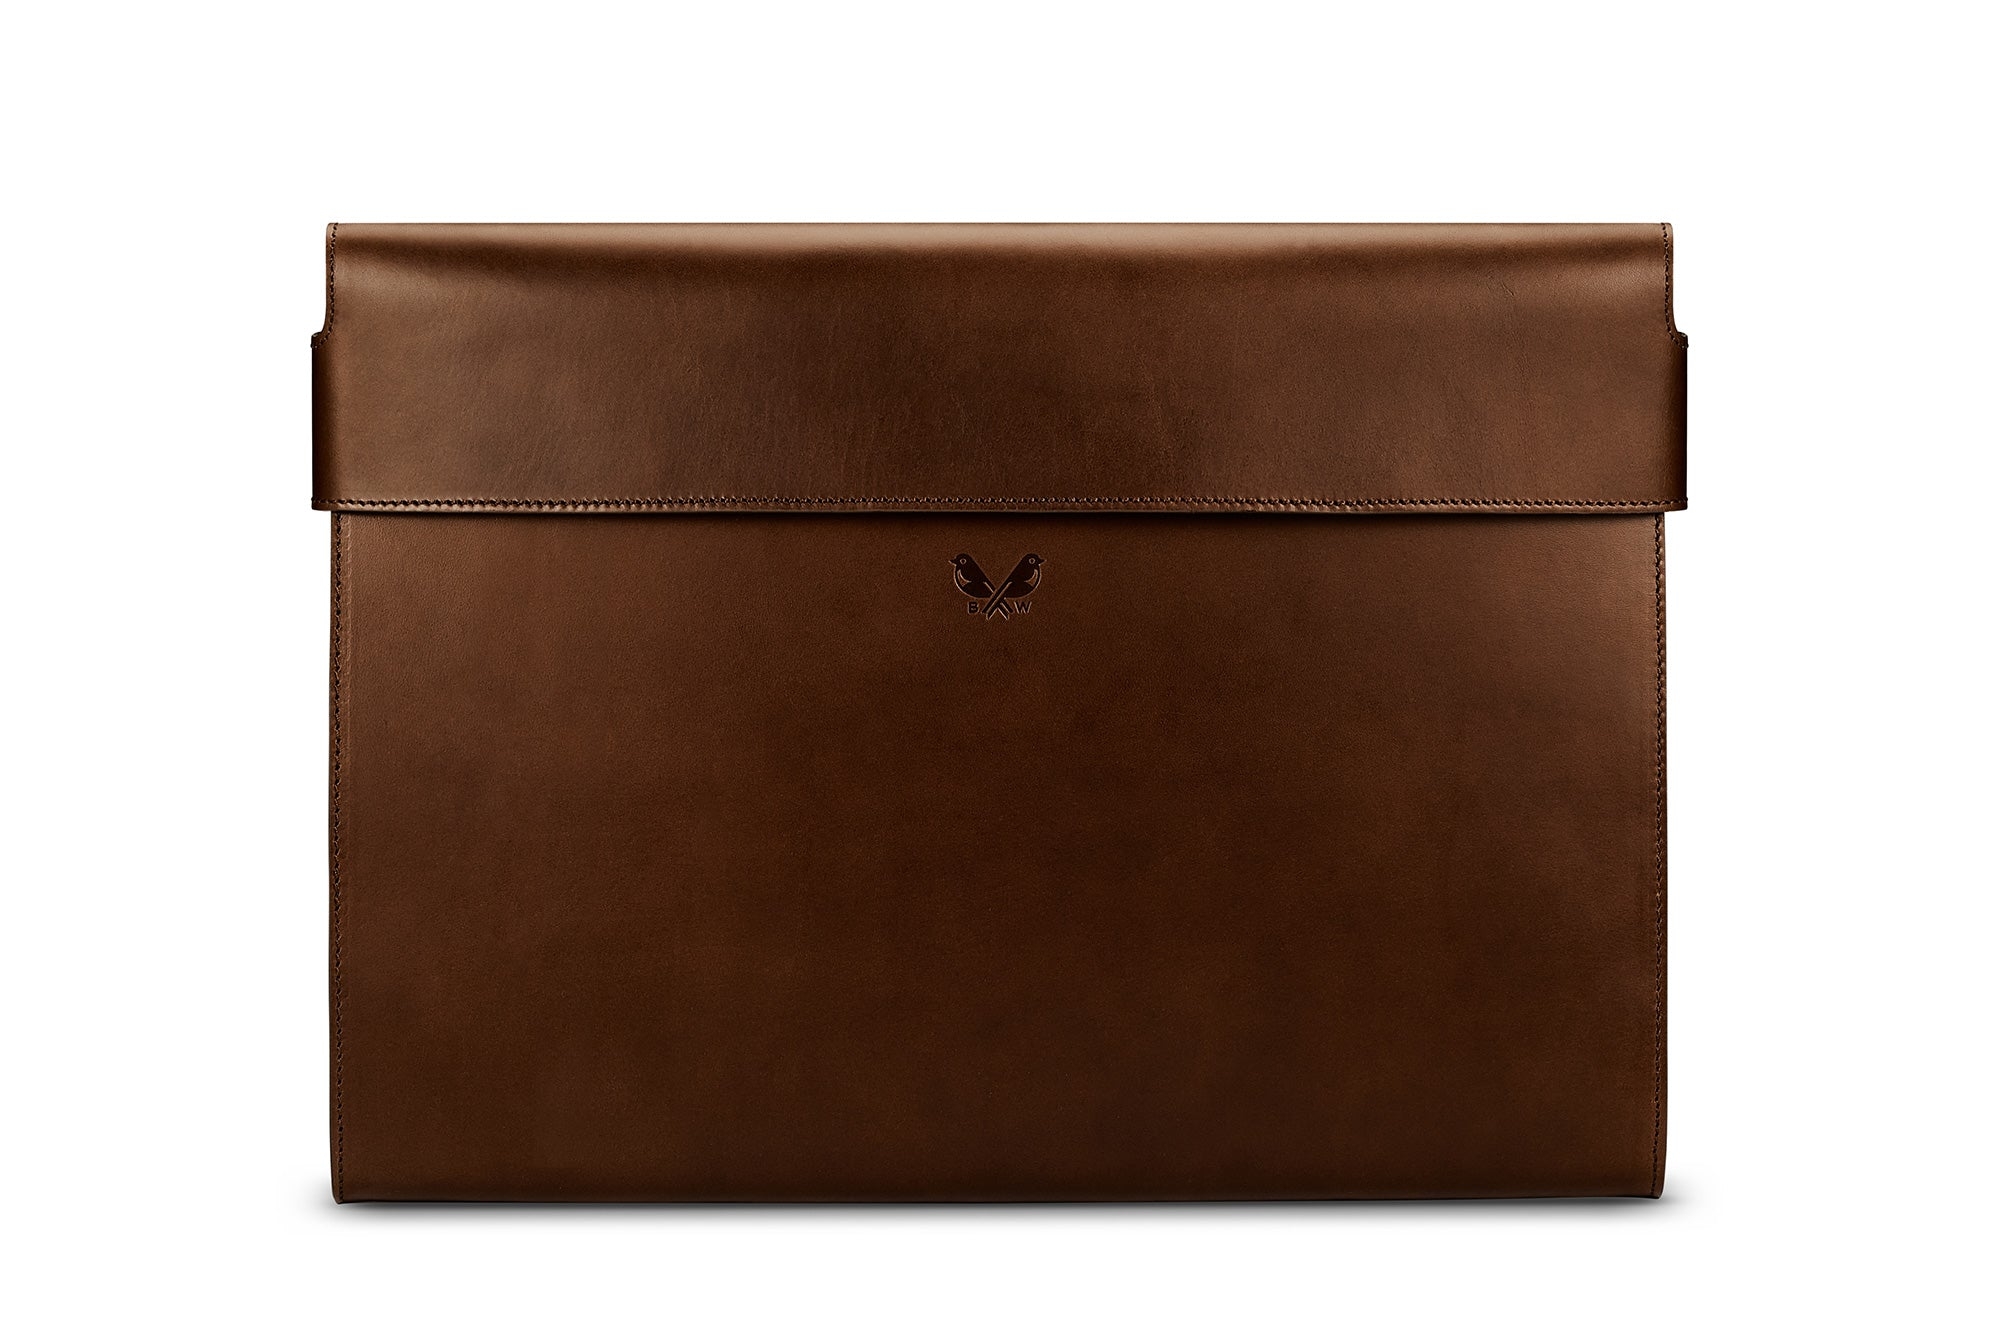 Folio - Brown Leather